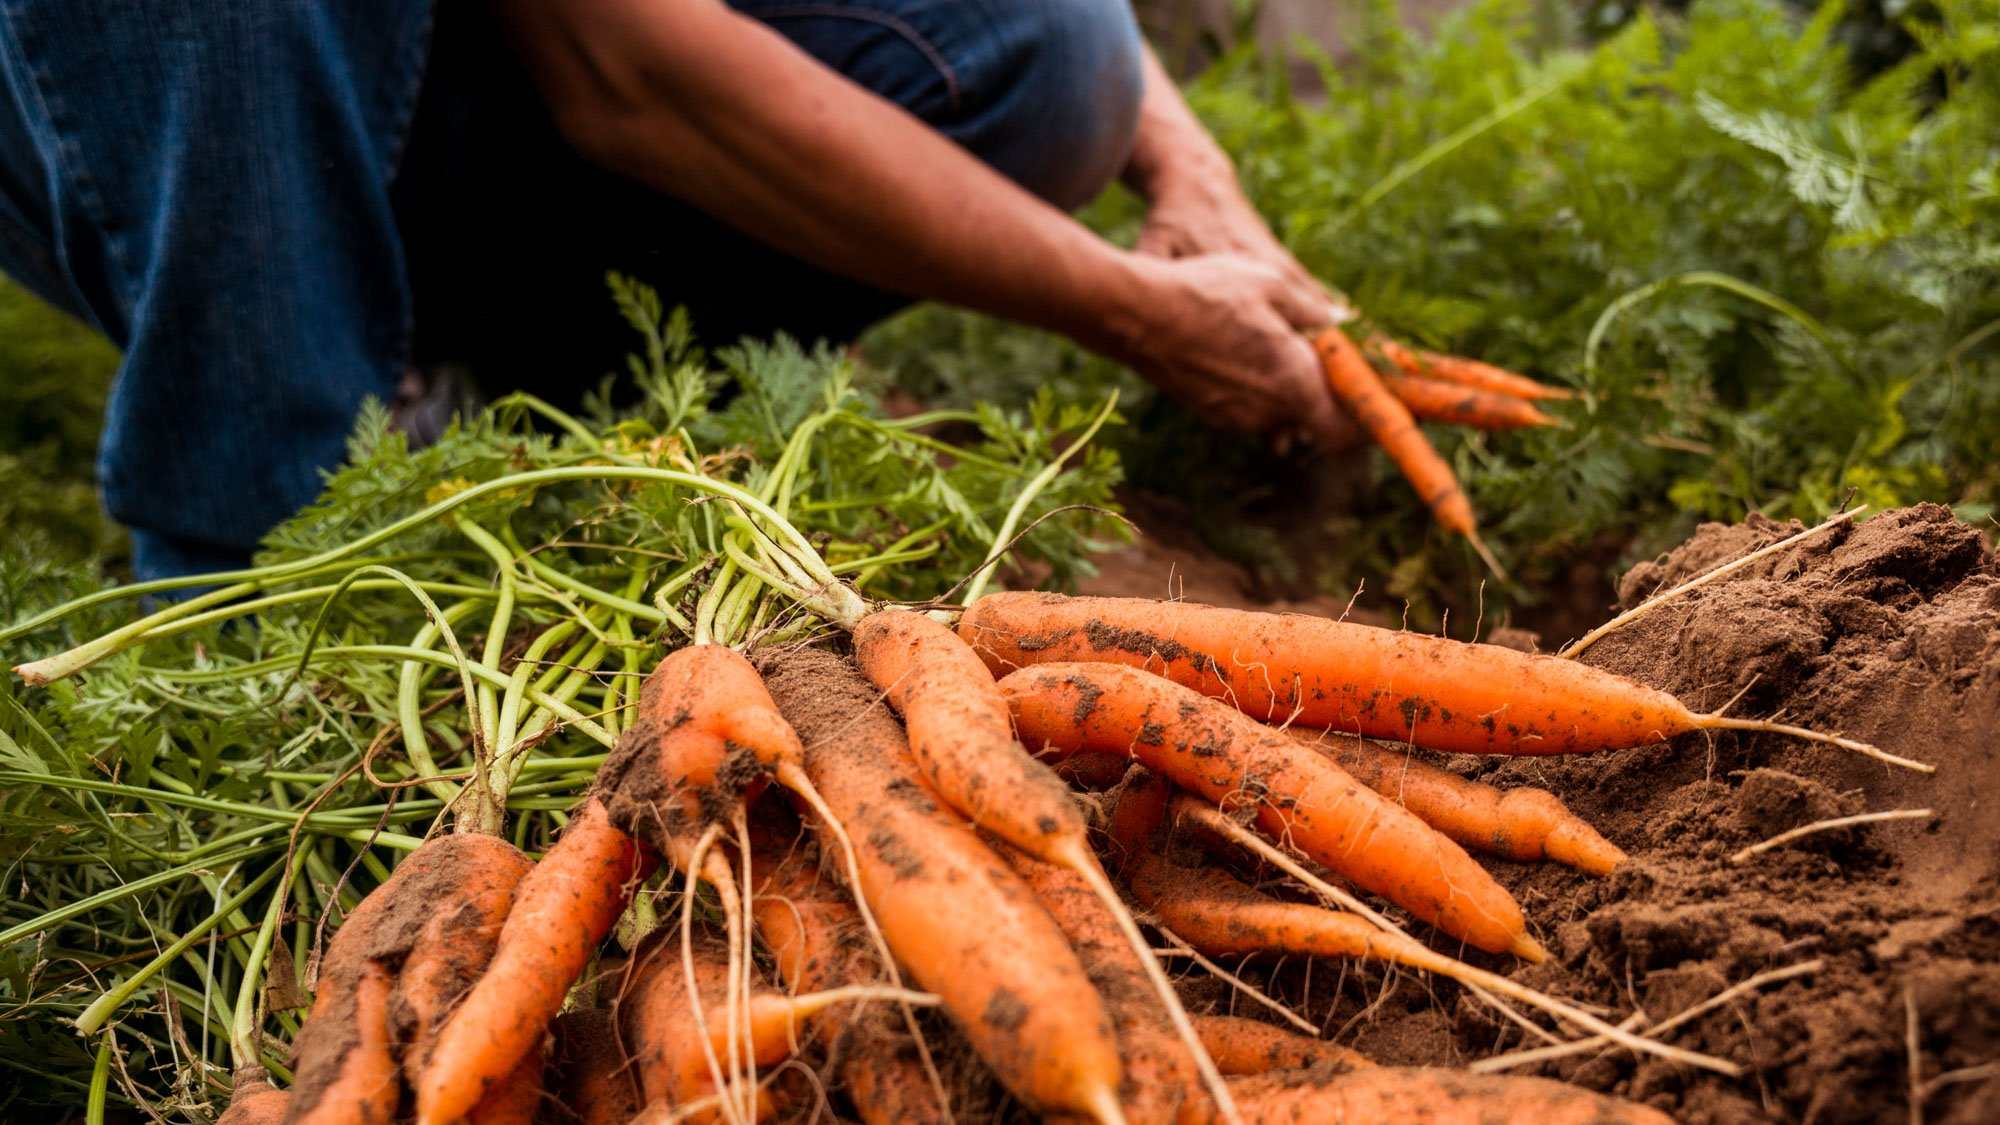 Picking carrots in Sukhbaatar, Mongolia